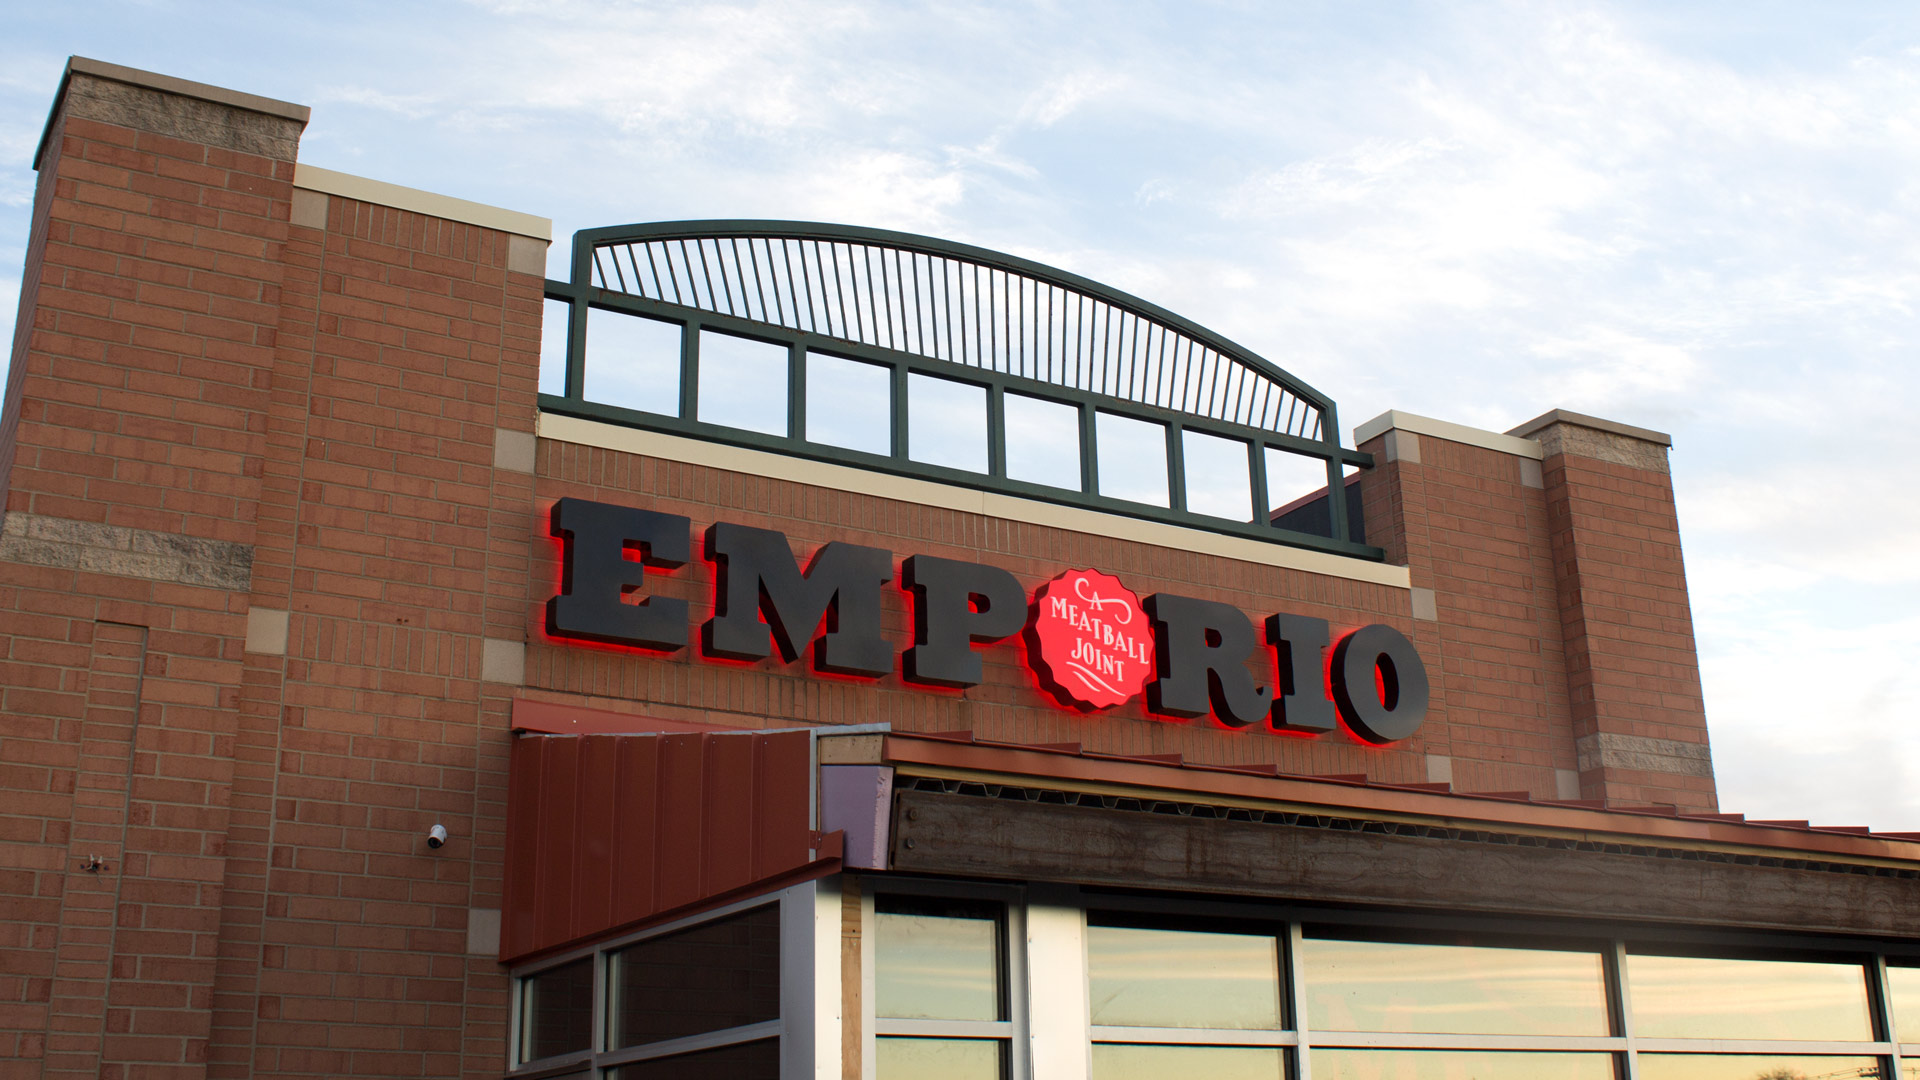 Ww news emporio wexford 1 hero